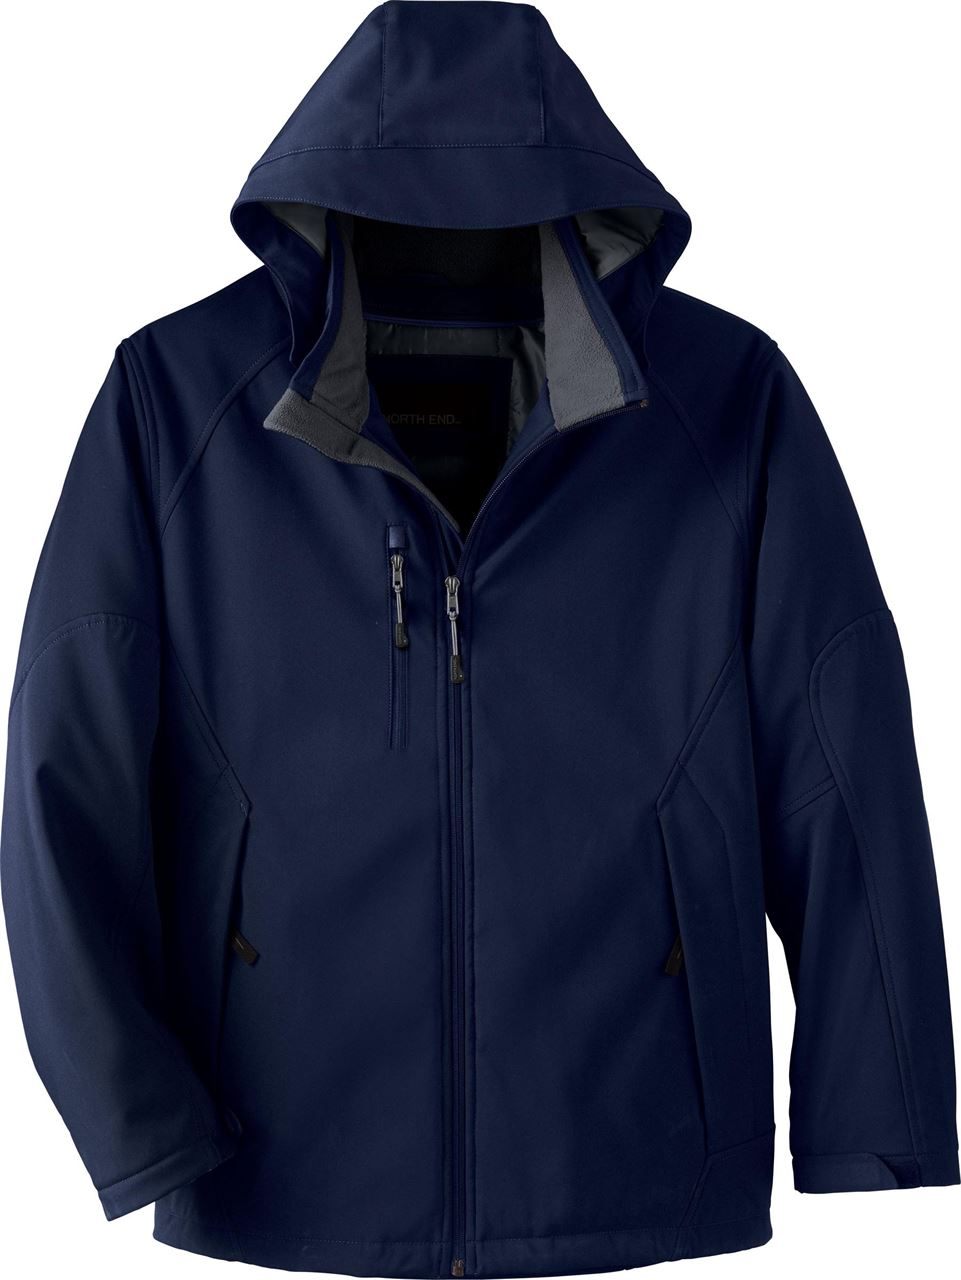 Picture of North End Glacier Men'S Insulated Soft Shell W/ Detach. Hood